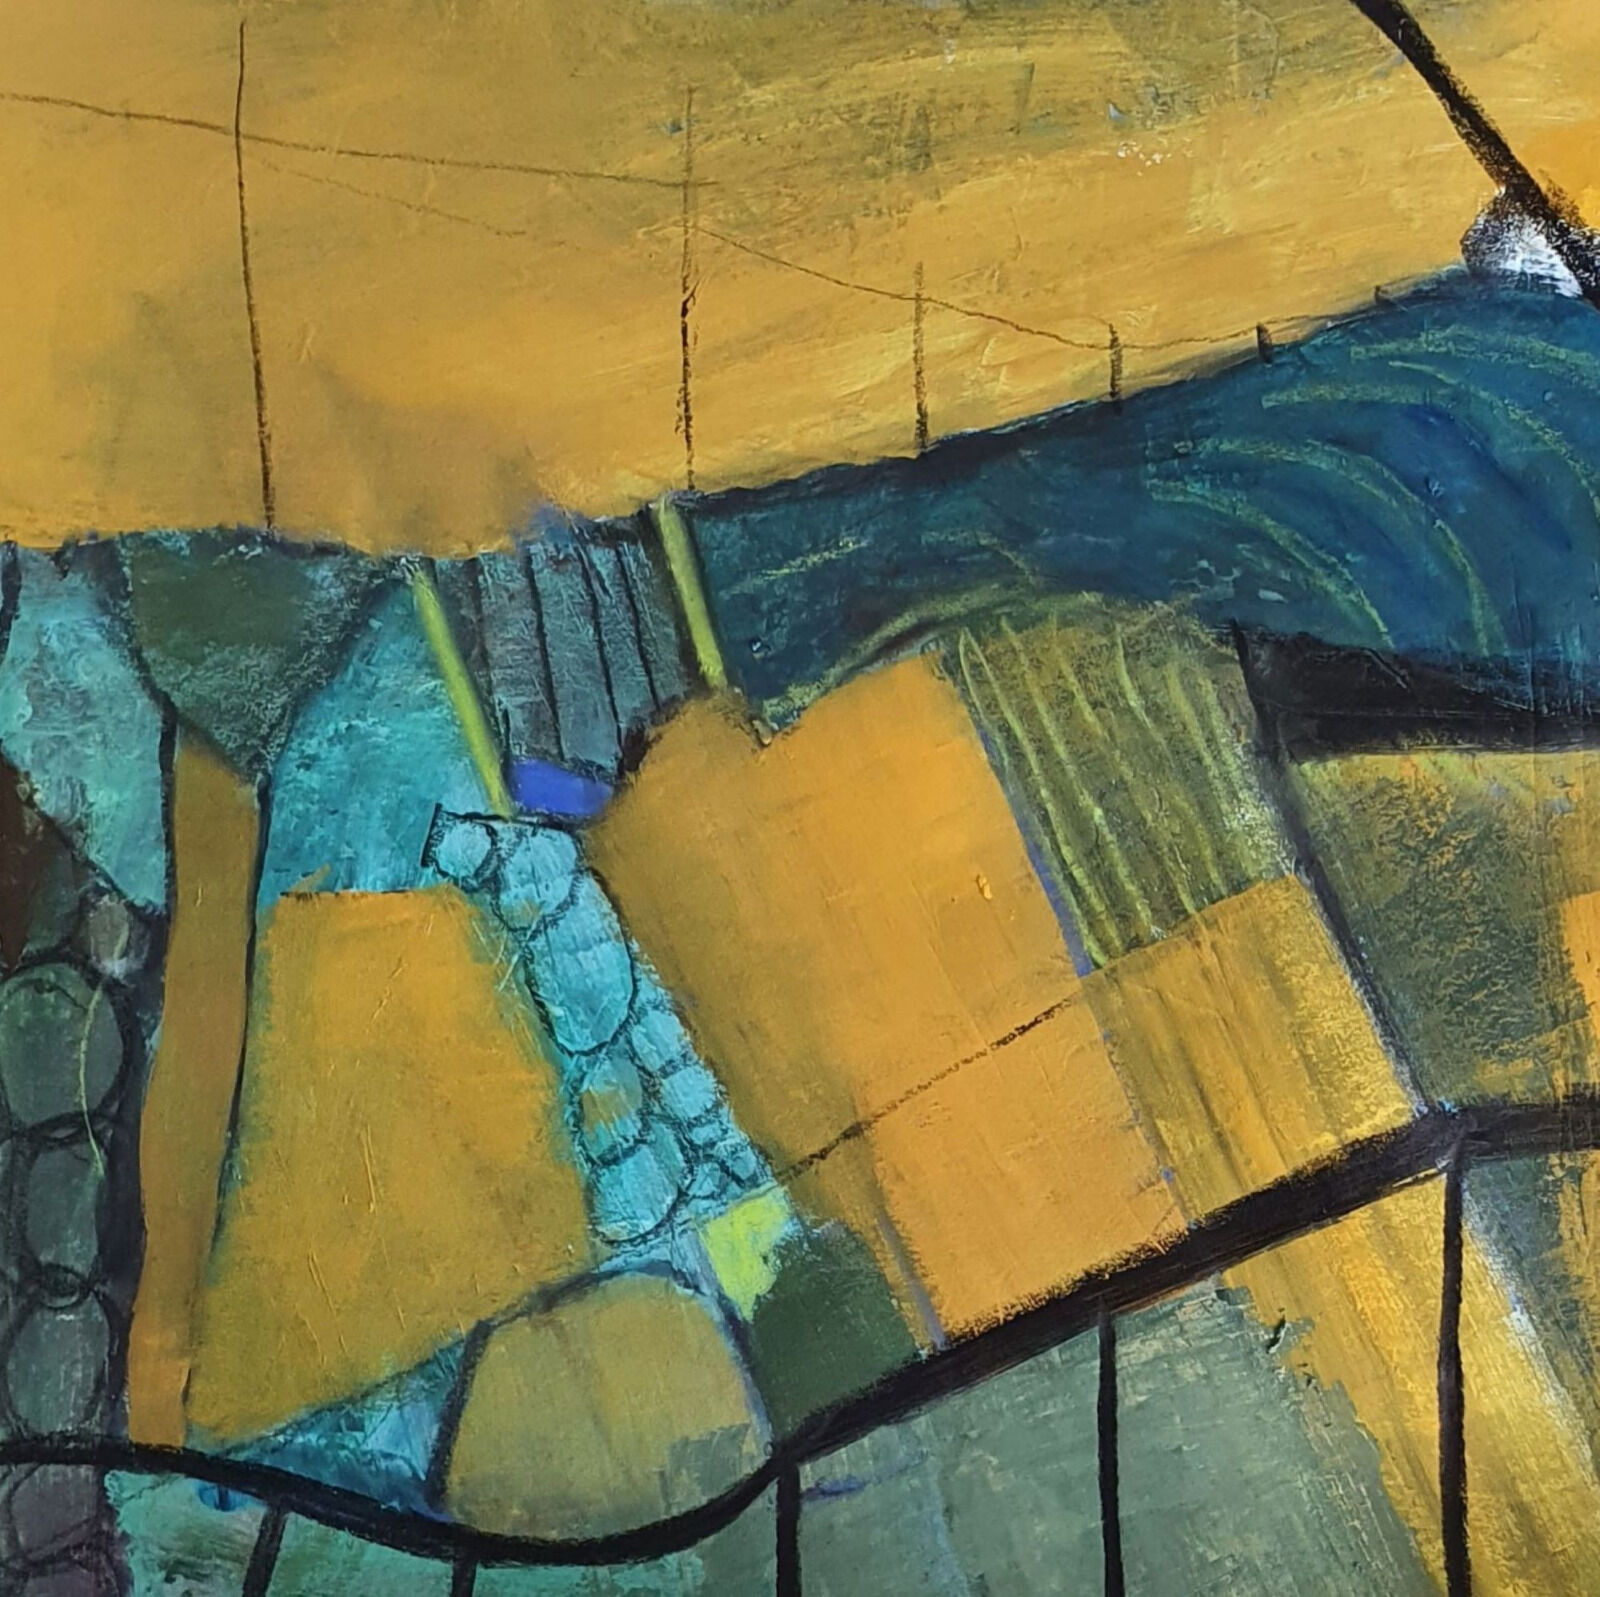 Landscape forms with blue